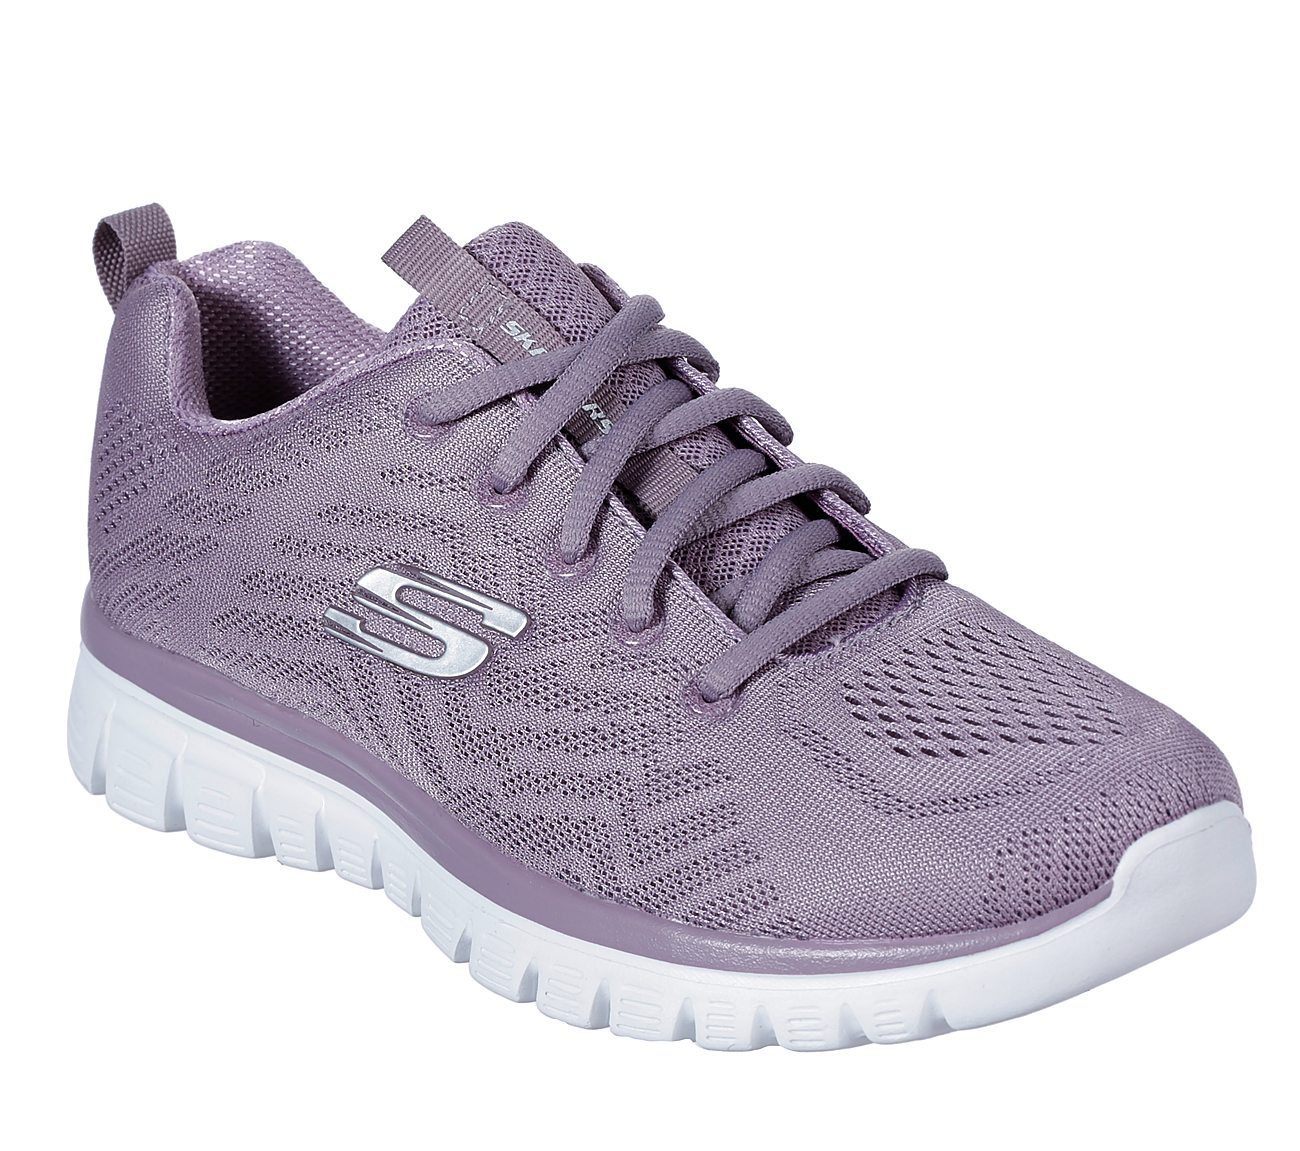 Women's Skechers Get Connected 12615 Sneakers free shipping extremely 78qlYE2Ve